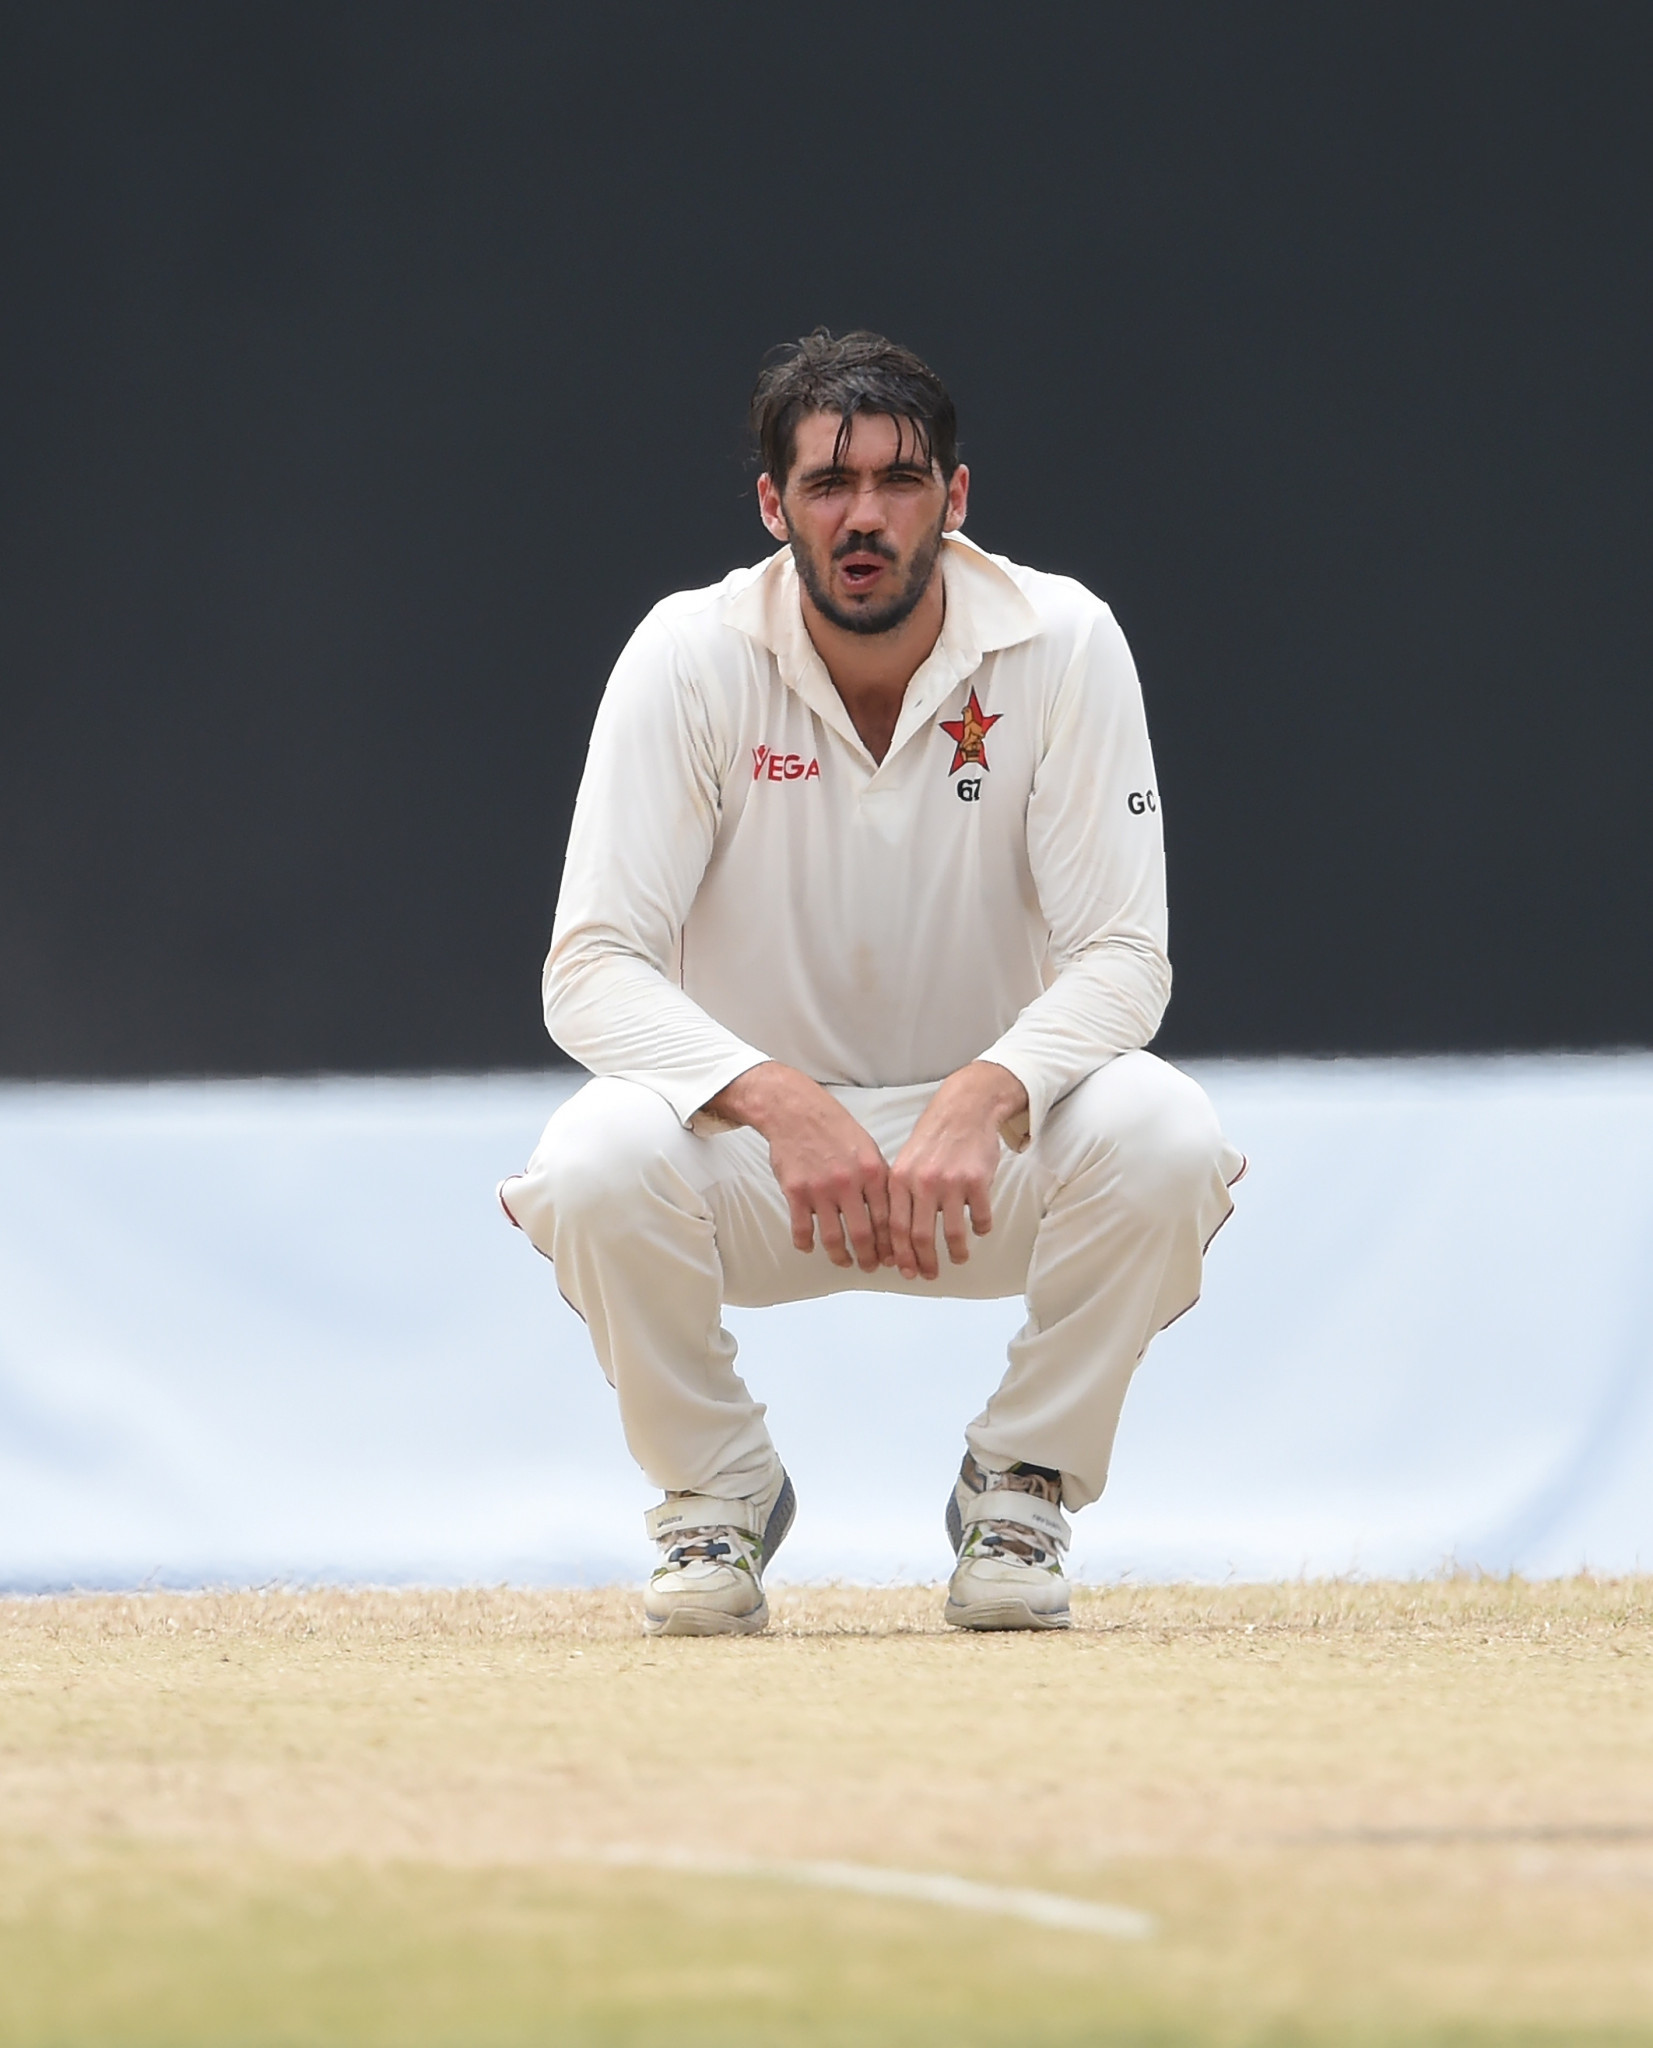 Zimbabwe cricket captain Graeme Cremer has been praised by the ICC for his